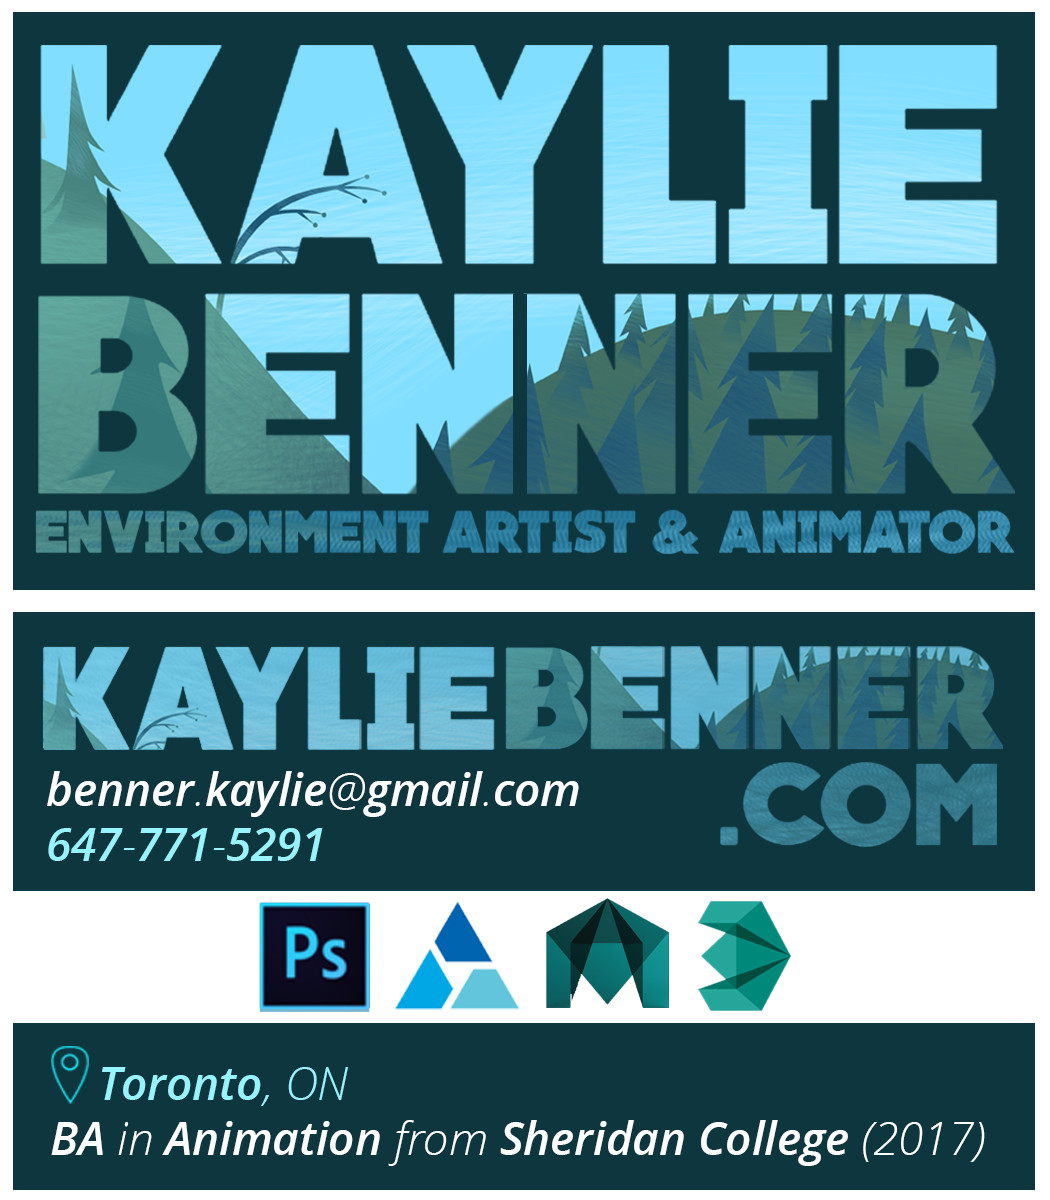 Kaylie benner businesscards